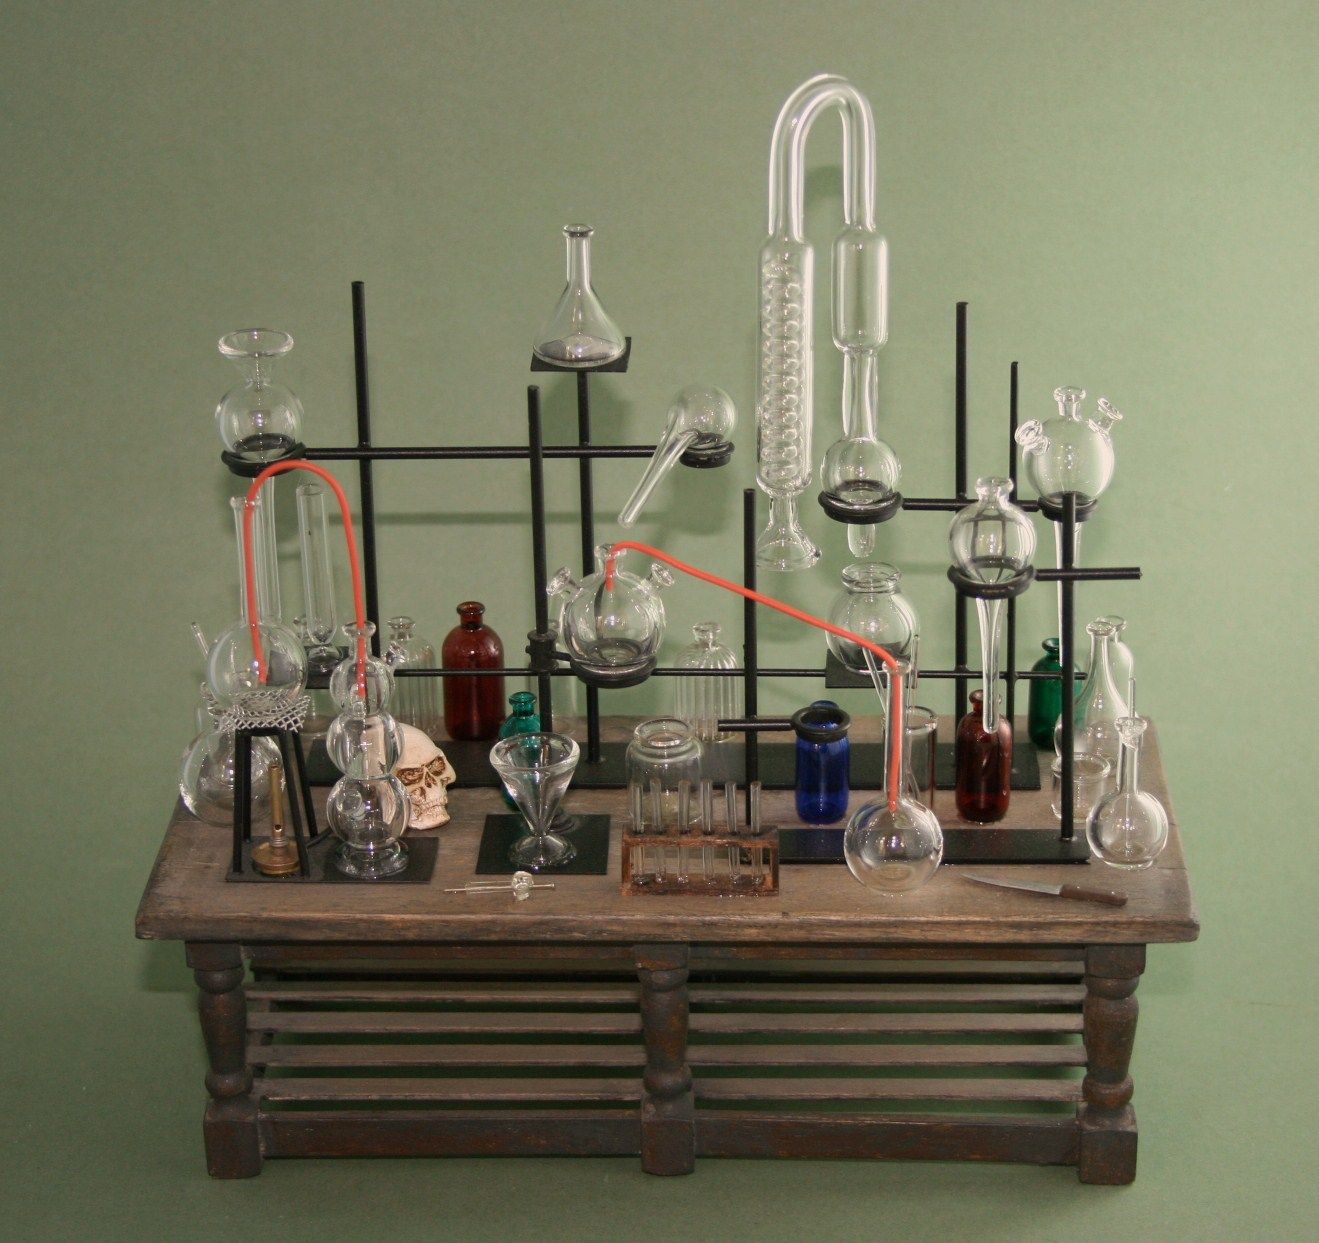 1/12scale lab, completly hade made with hand blown glass